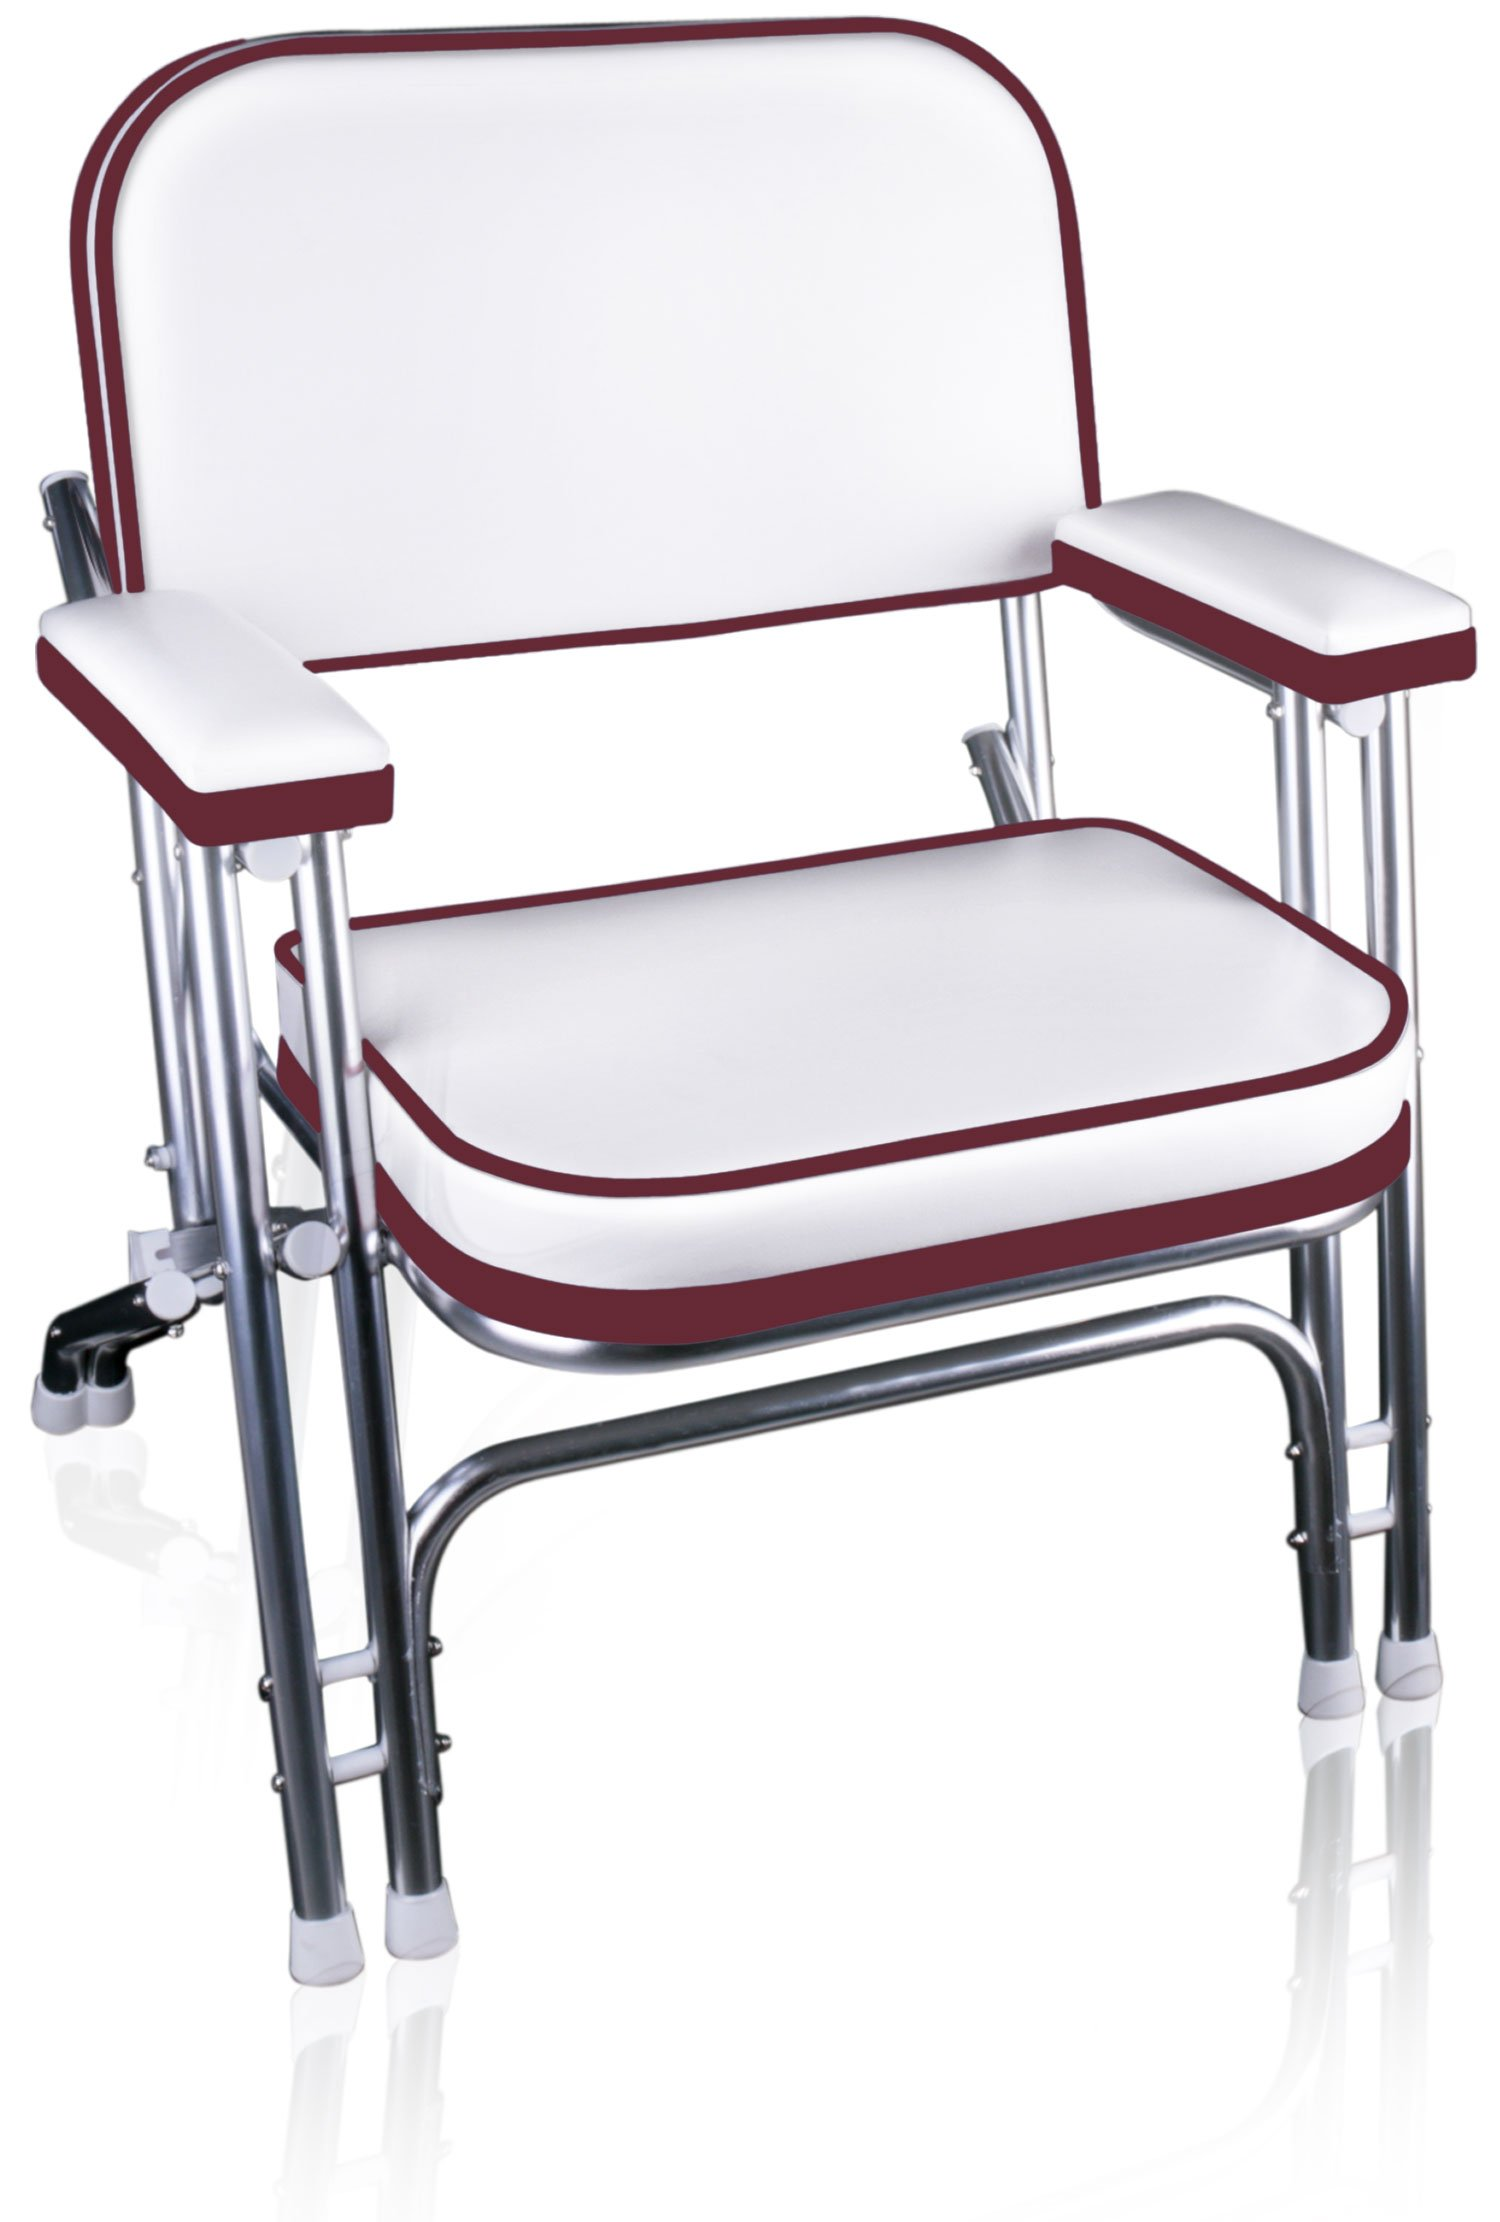 Leader Accessories Portable Folding Deck Chair with Aluminum Frame and Armrests(White/Red) by Leader Accessories